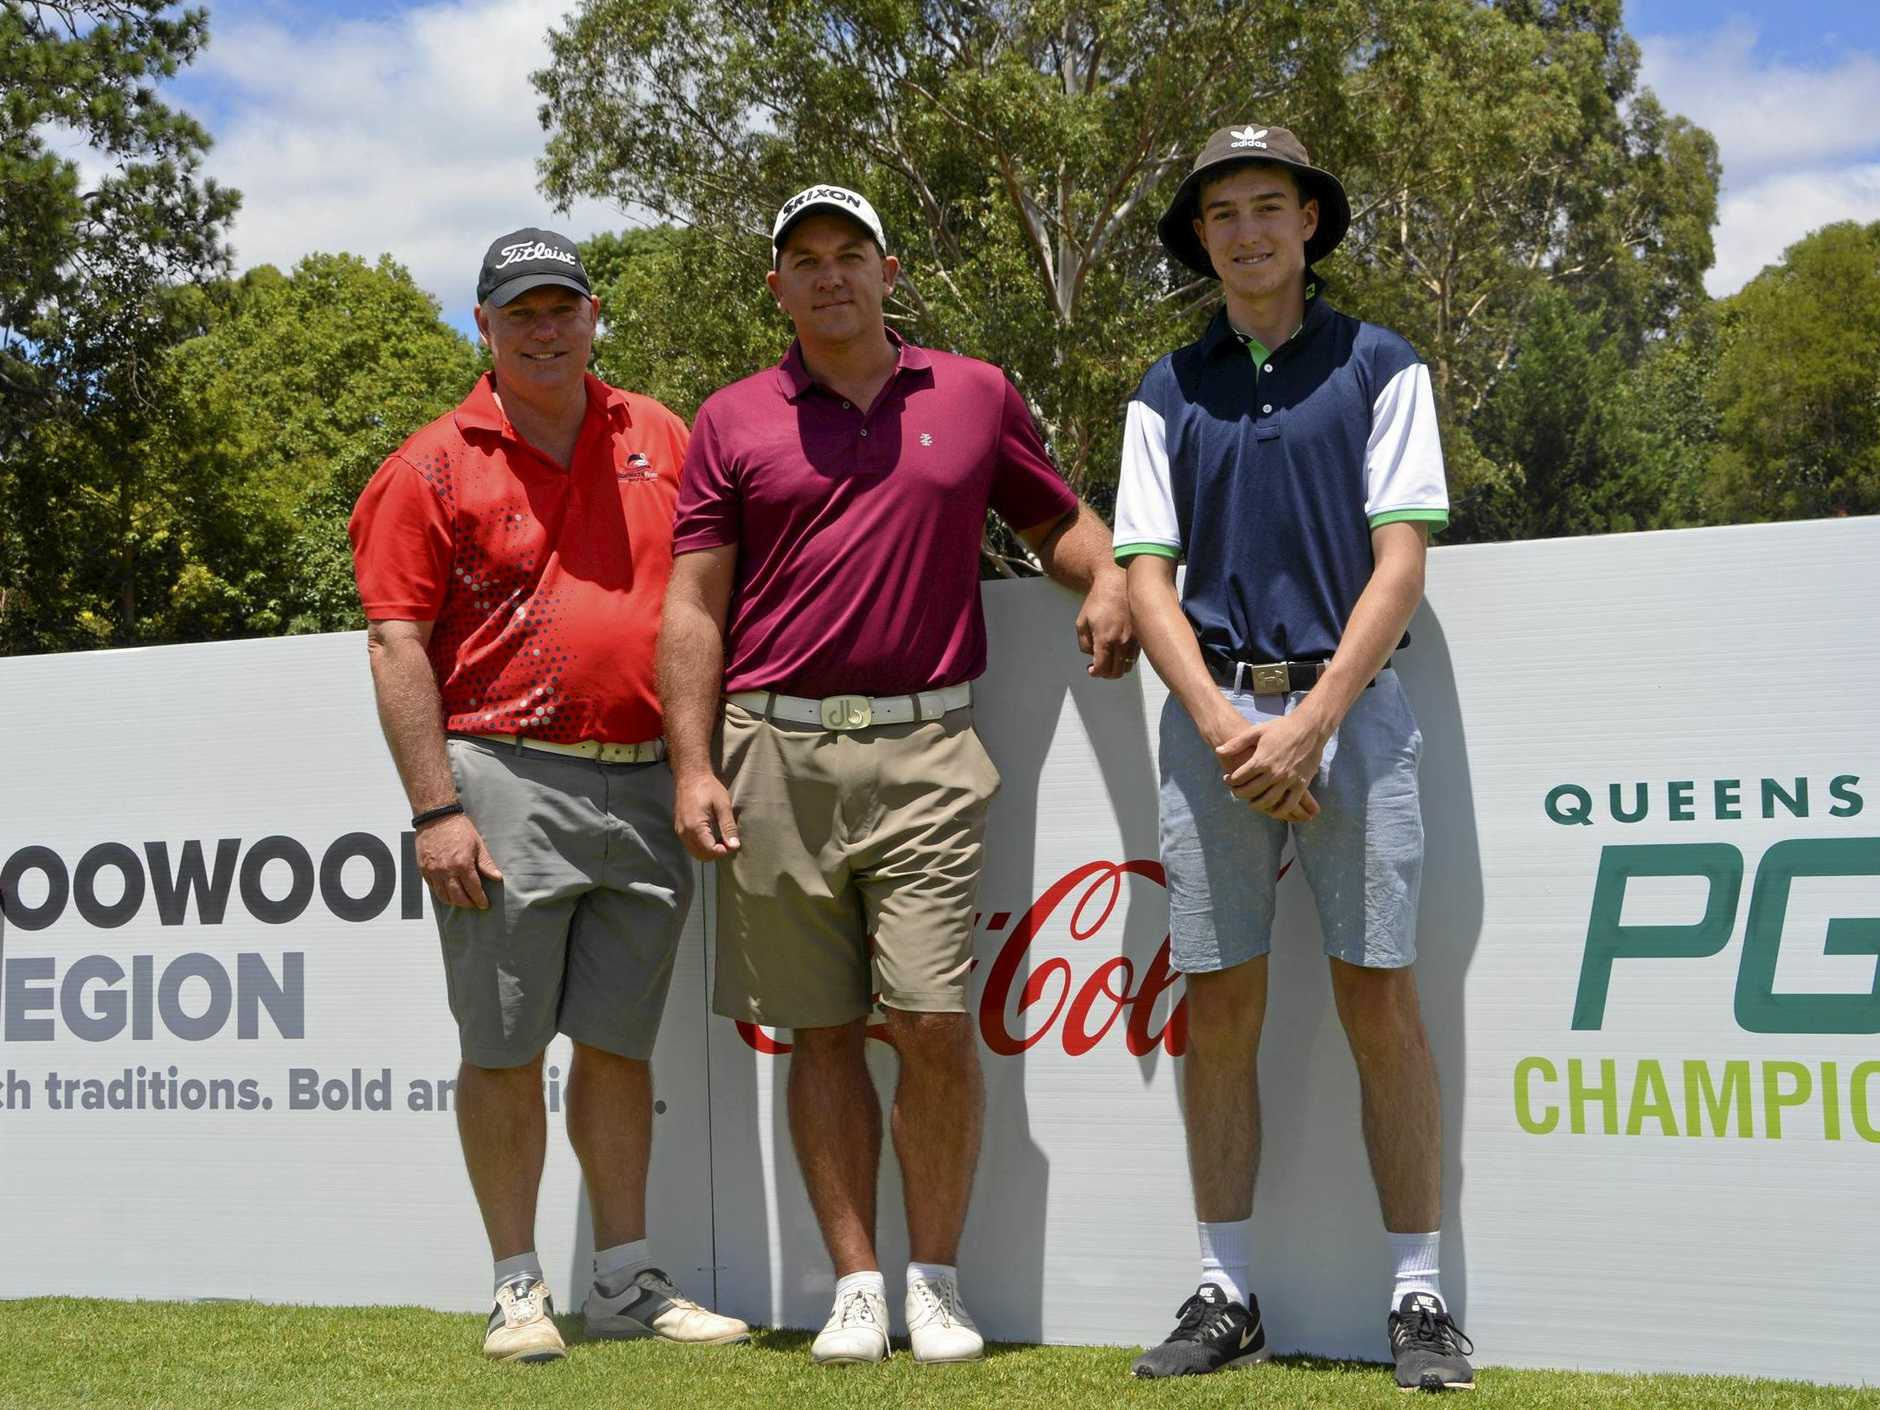 Toowoomba trio (from left) Mark Ryle, Anthony Timms and Quinn Croker are preparing for their start in this week's Coca-Cola Queensland PGA Championship at City Golf Club.